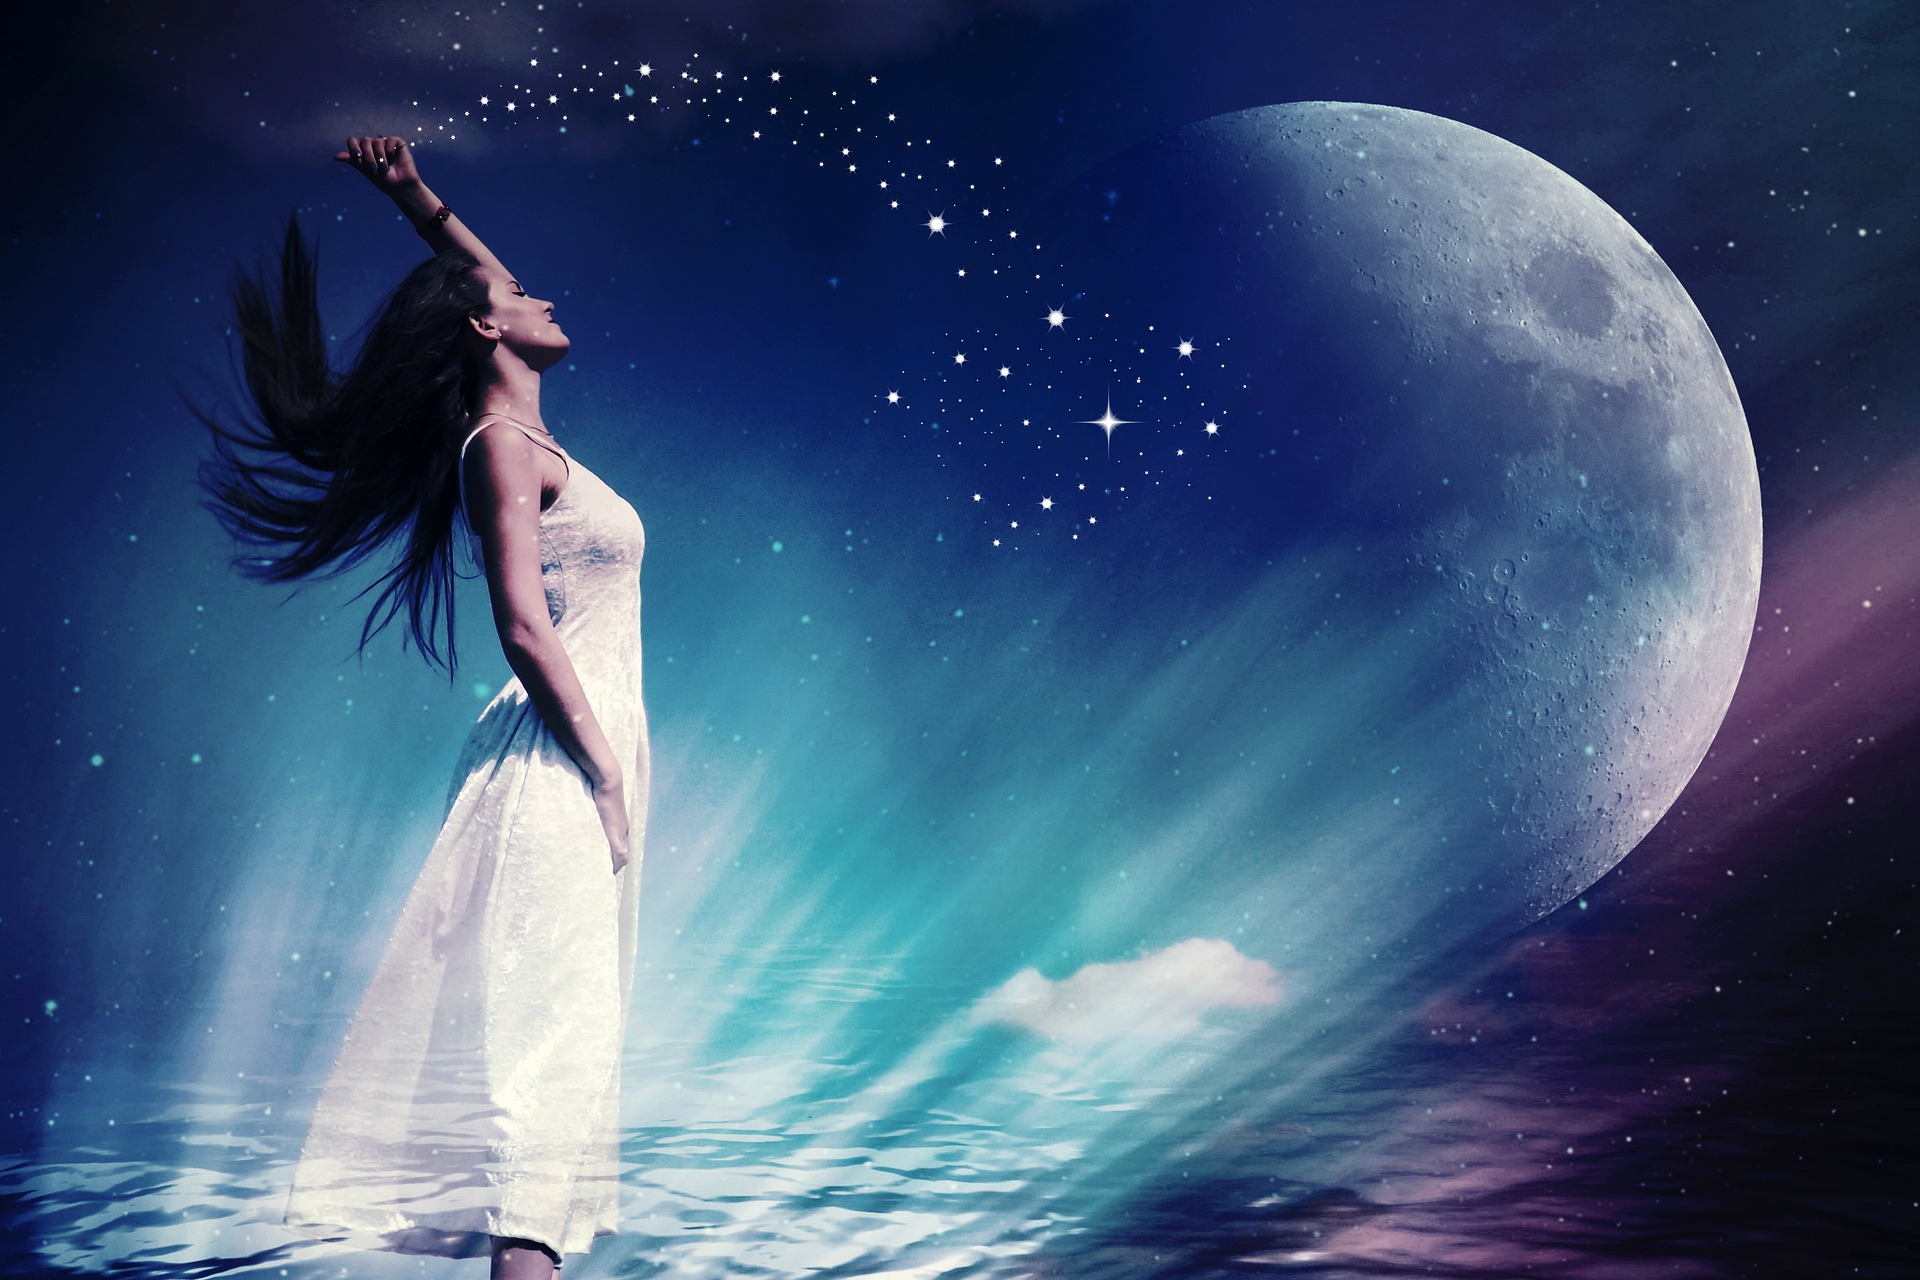 Energy Update and Feedback on Friday's Full Moon Workshop